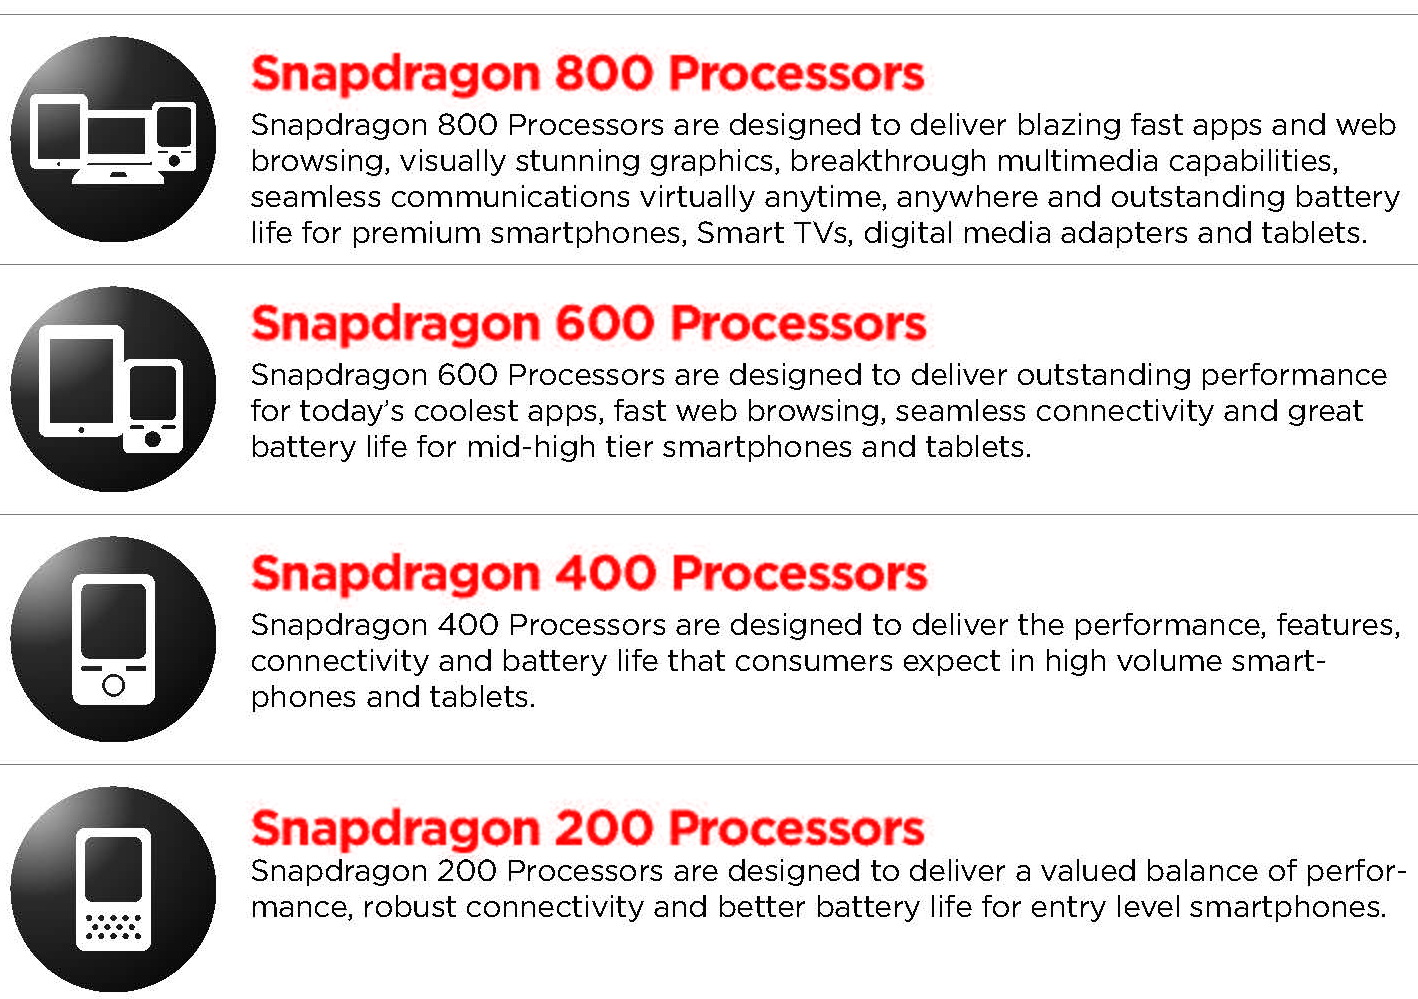 Qualcomm Snapdragon 800 Vs 600 Vs 400 Vs 200 series